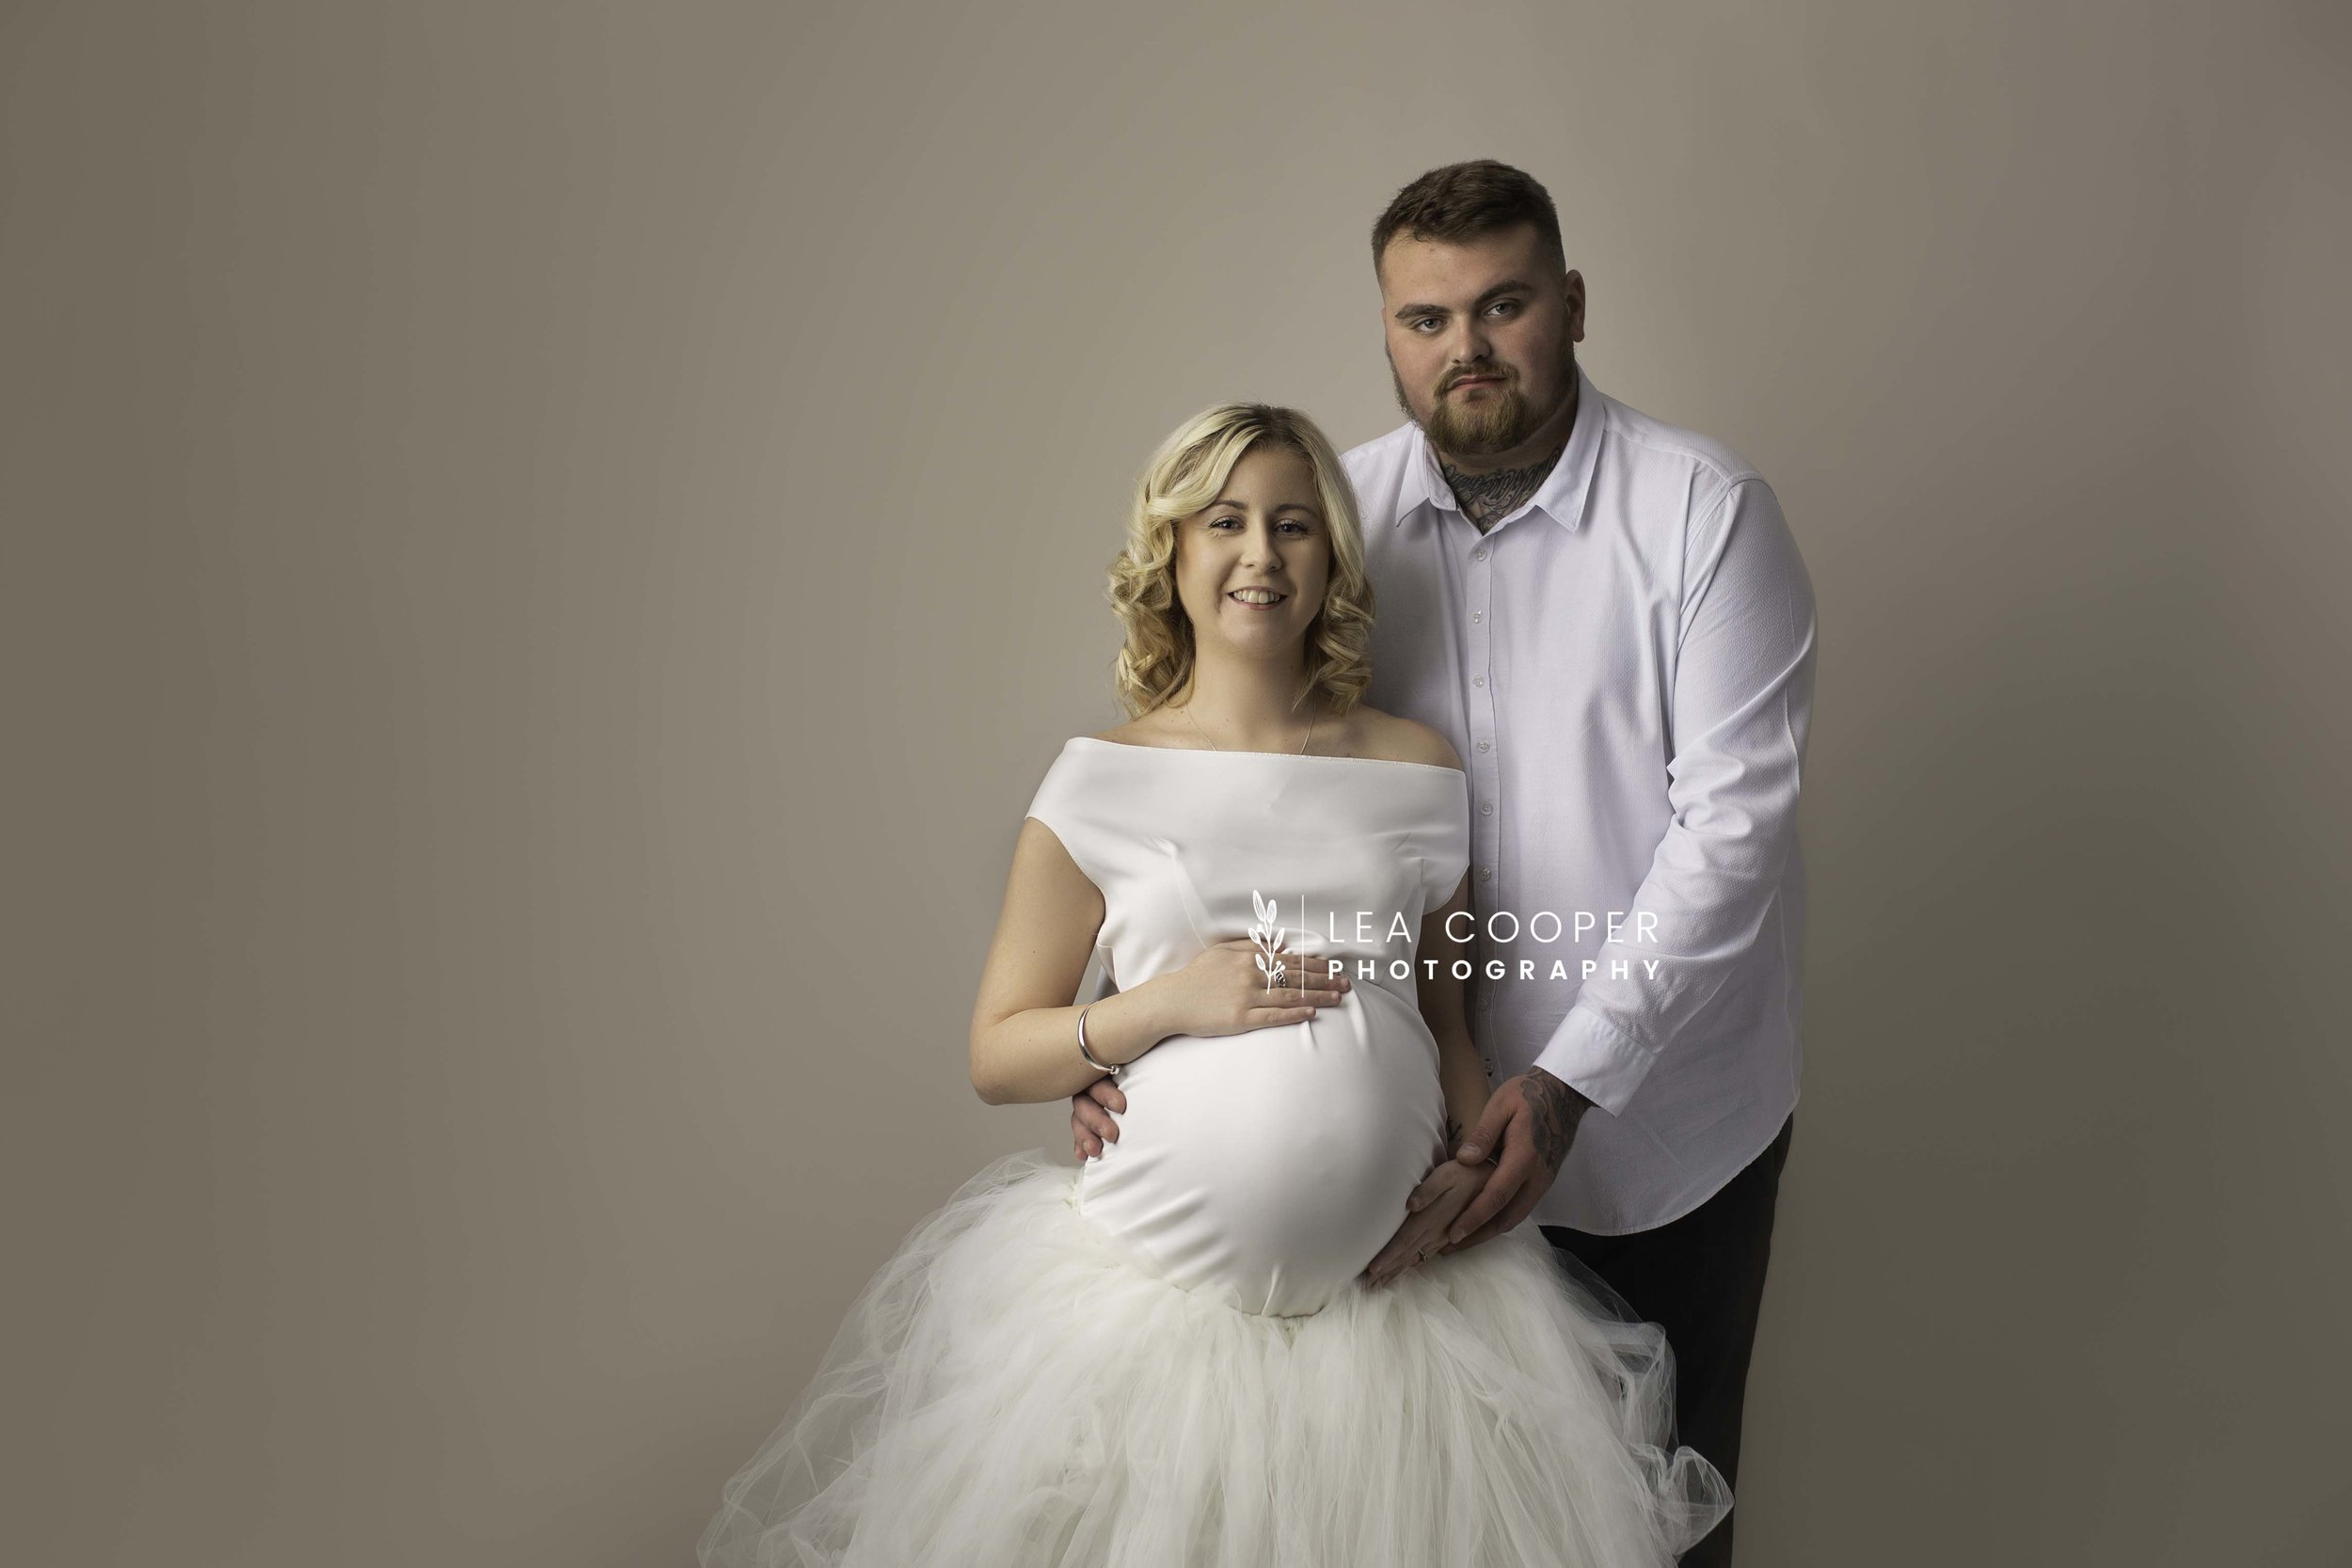 LEA COOPER PHOTOGRAPHY NEWBORN MATERNITY SESSION BABY BUMP SESSION WILLENHALL WEST MIDLANDS WALSALL WEDNESBURY UK14.jpg